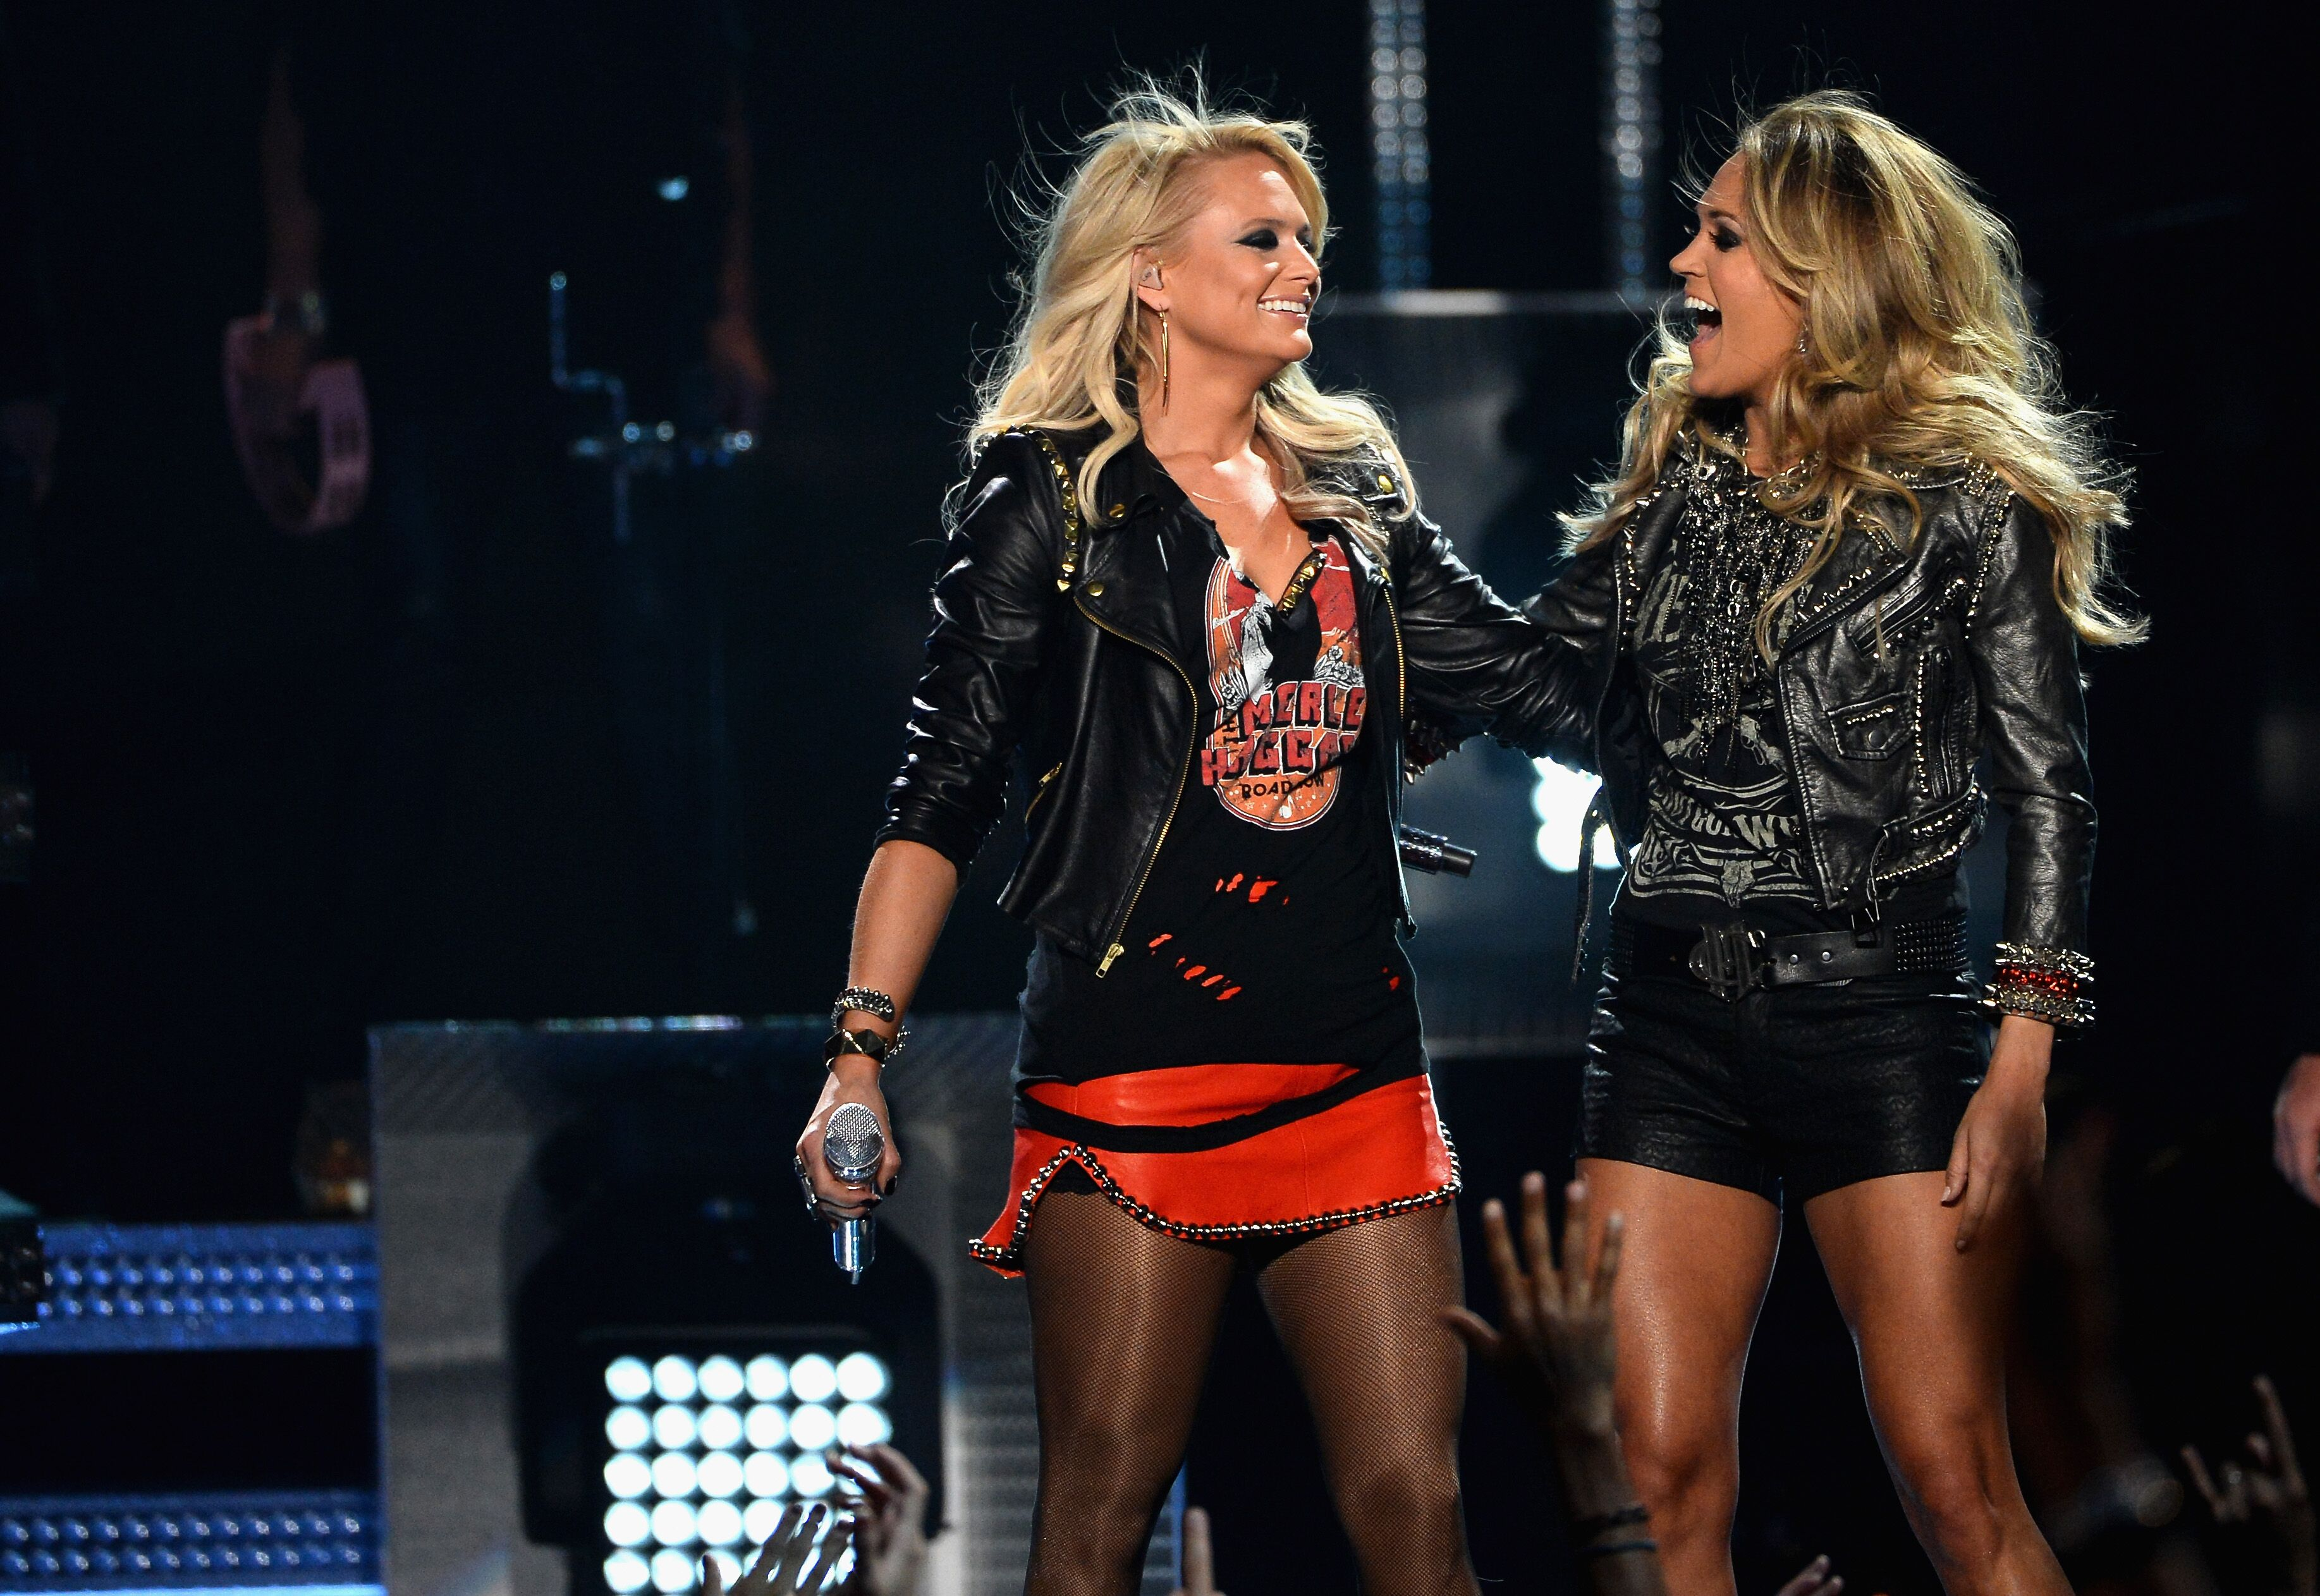 Miranda Lambert and Carrie Underwood perform onstage at the Billboard Music Awards in 2014, in Las Vegas | Source: Getty Images